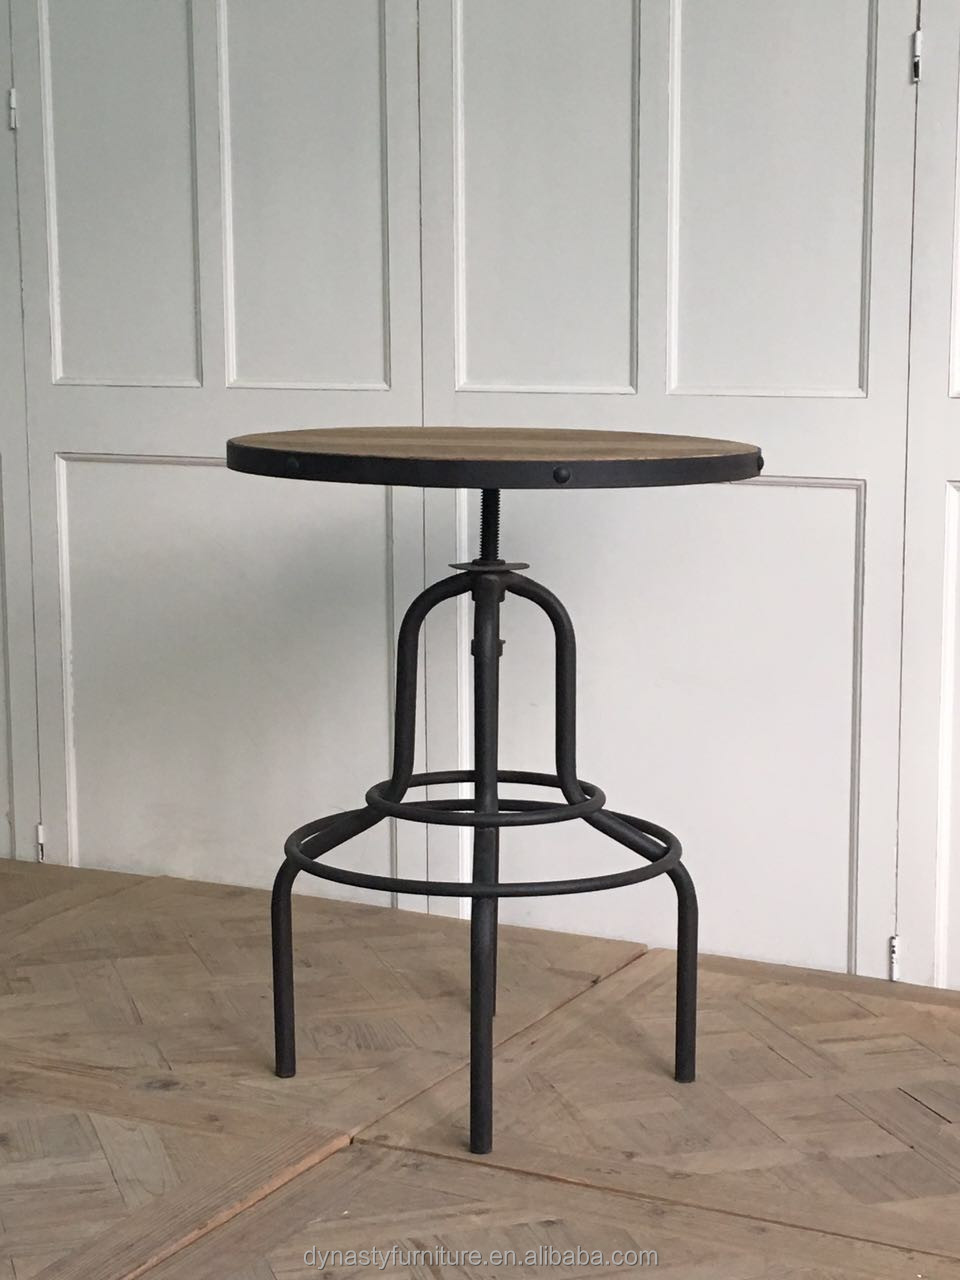 industrial style furniture metal frame <strong>bar</strong> table wood top design